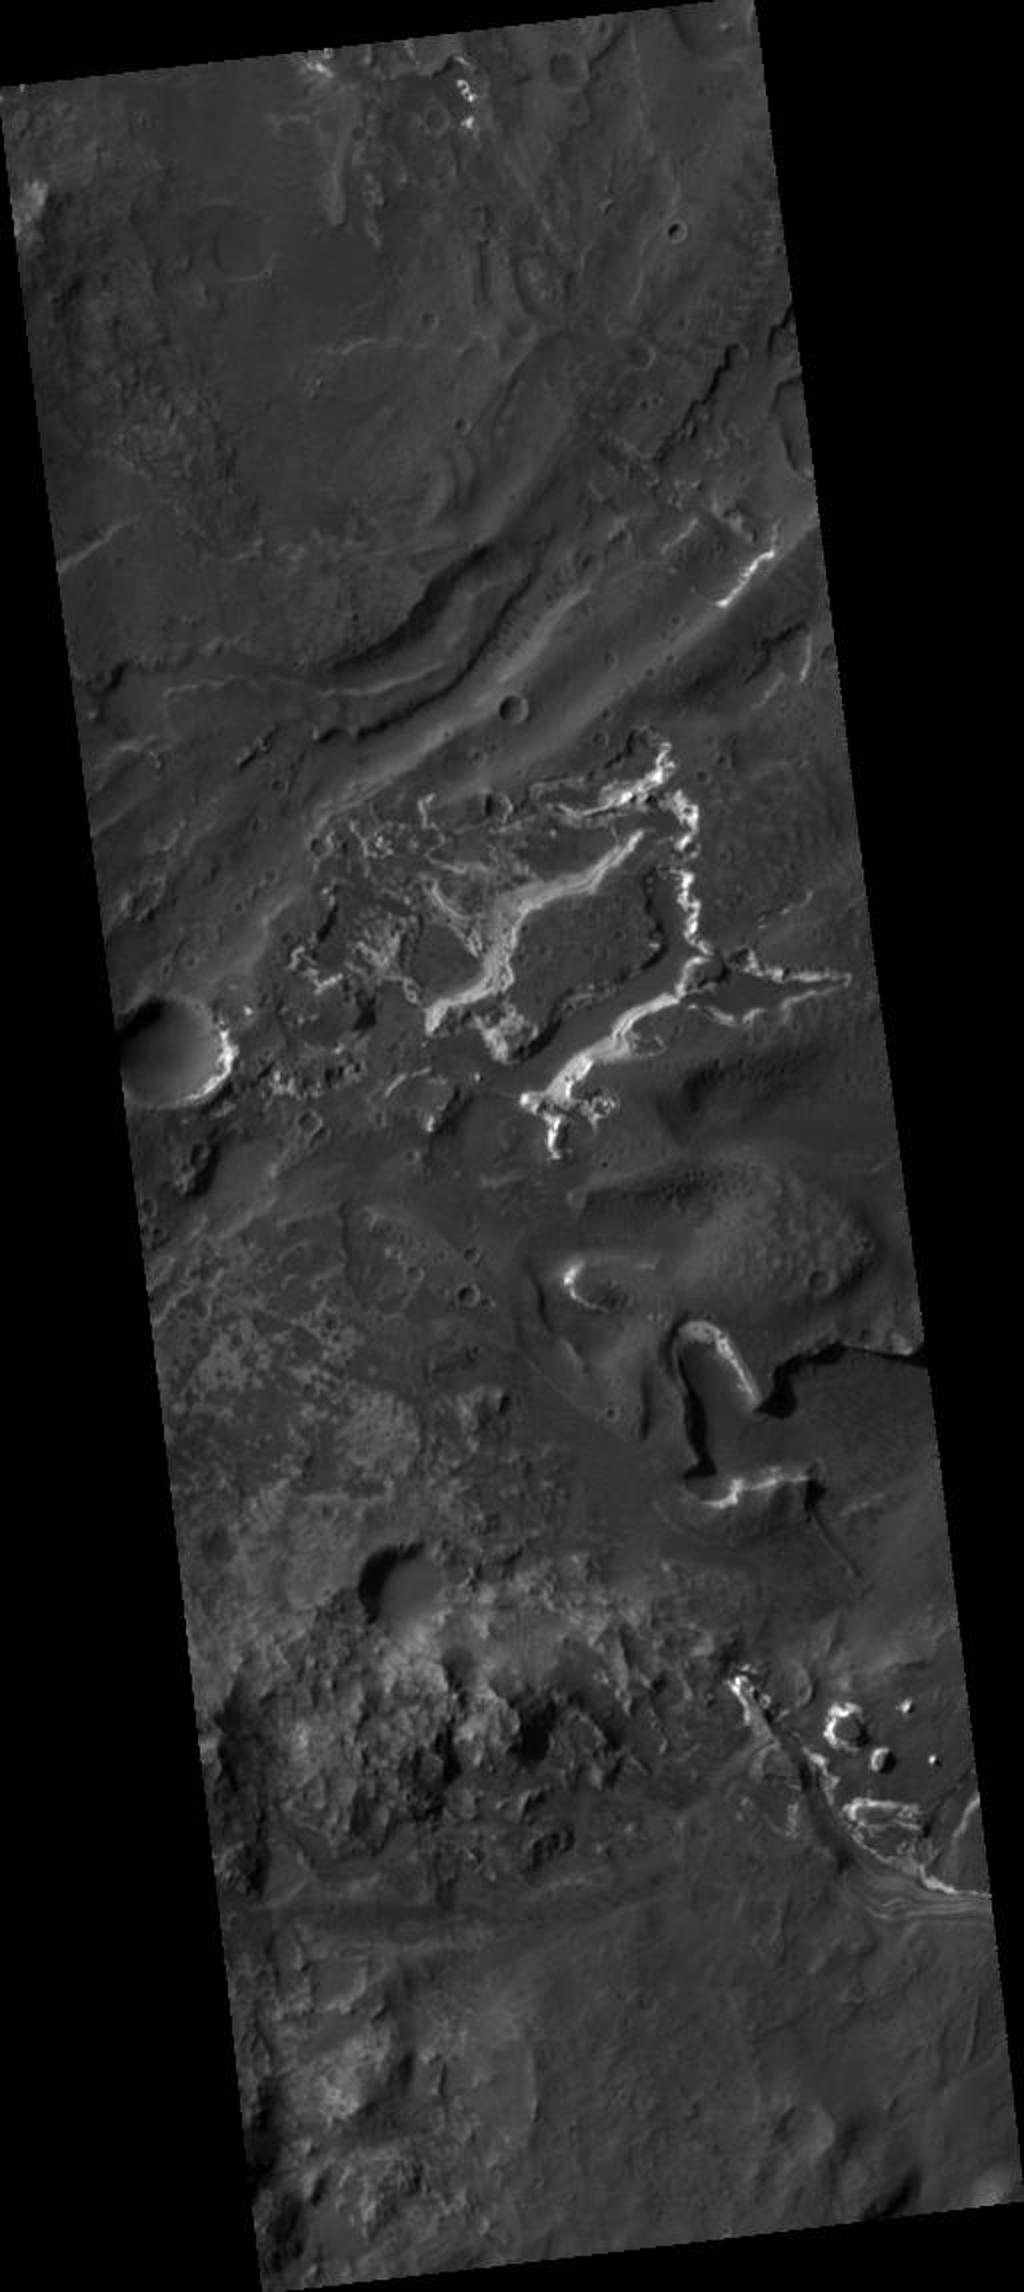 "This HiRISE image covers the southwest portion of the terraces and floor of Holden Crater situated in southwest Margaritifer Terra. The HiRISE sub-frame shows the most clearly-evident image of a megabreccia on Mars. Breccia is a rock typically consisting of rock fragments of various sizes and shapes that have been broken, tumbled and cemented together in sudden geologic event (e.g., a landslide, a flashflood or even an impact-cratering event). If it were not for the dark sandy dunes dispersed through out the sub-image, this image could easily fool an expert into thinking that this image is actually a photograph of a hand sample of an impact breccia. The prefix ""mega"" implies that the breccia in the sub-image consists of clasts, or rock fragments, that are typically larger than a large house or a building. The rectangular megaclast near the center of the image is a colossal 50 x 25 meters (~150 X 75 feet). As mentioned in the transition image caption for Holden crater (TRA_000861_1530), the crater likely experienced extensive modification by running water, which is supported by observations of drainage and deposition into the crater from a large channel (Uzboi Valles) breaching Holden's southwest rim. While it is possible that the megabreccia formed from a catastrophic release of water into the crater, a more likely possibility is that it formed from the impact that created the approx. 150 km-in-diameter Holden crater. Popigai Crater, a terrestrial crater of half the size of Holden, possesses a similar occurrence of megabreccia with a similar range in megaclast size to the Holden crater example. An impact-generated megabreccia deposit, as observed in terrestrial craters, typically lies beneath the crater floor, so the exhumation of the megabreccia may be the result of down-cutting and erosion of water that once flowed through Uzboi Valles."